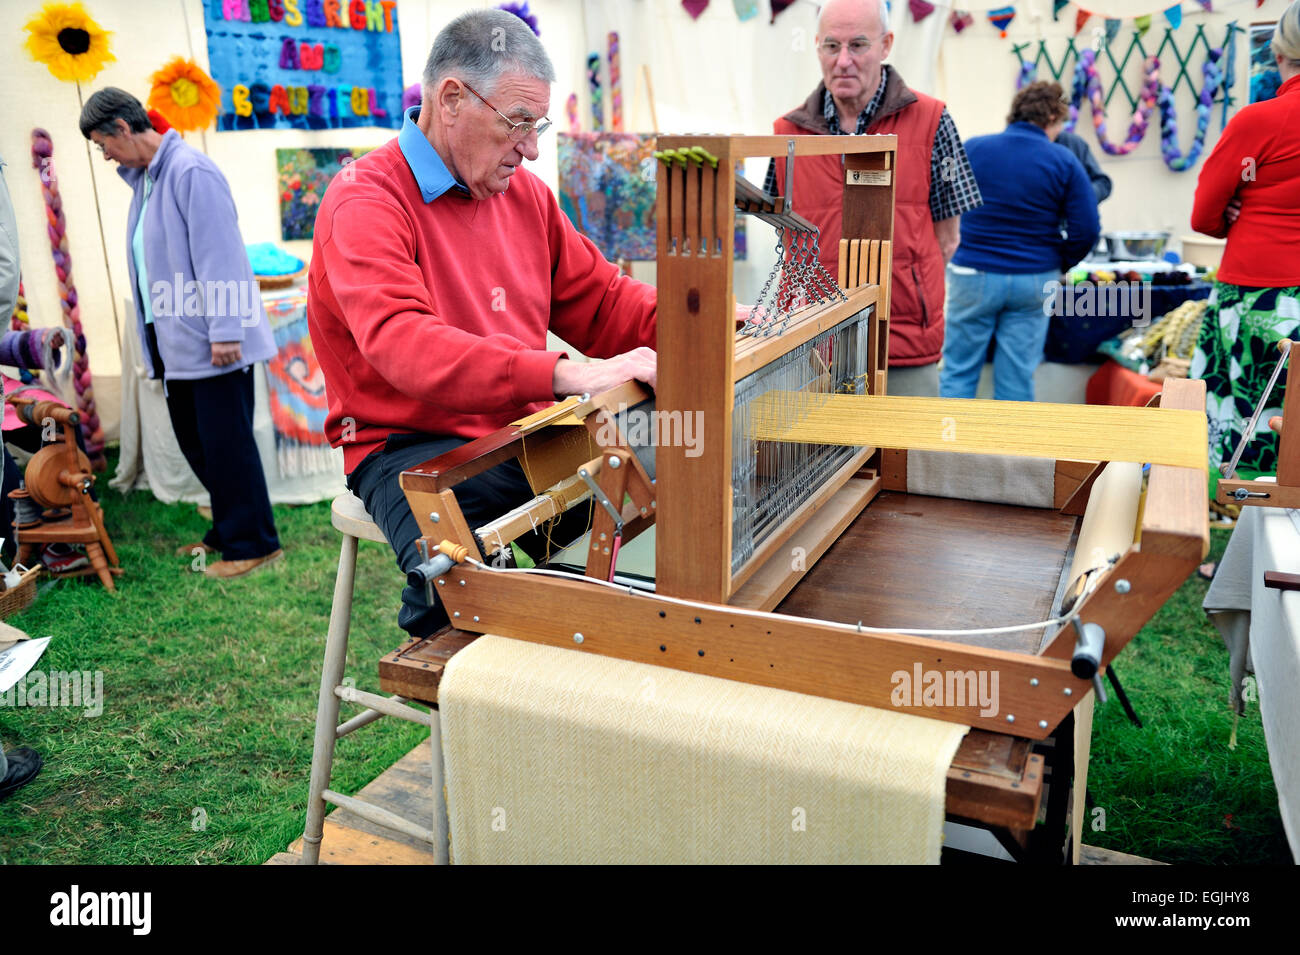 male craftsman weaver demonstrating weaving at county show uk - Stock Image